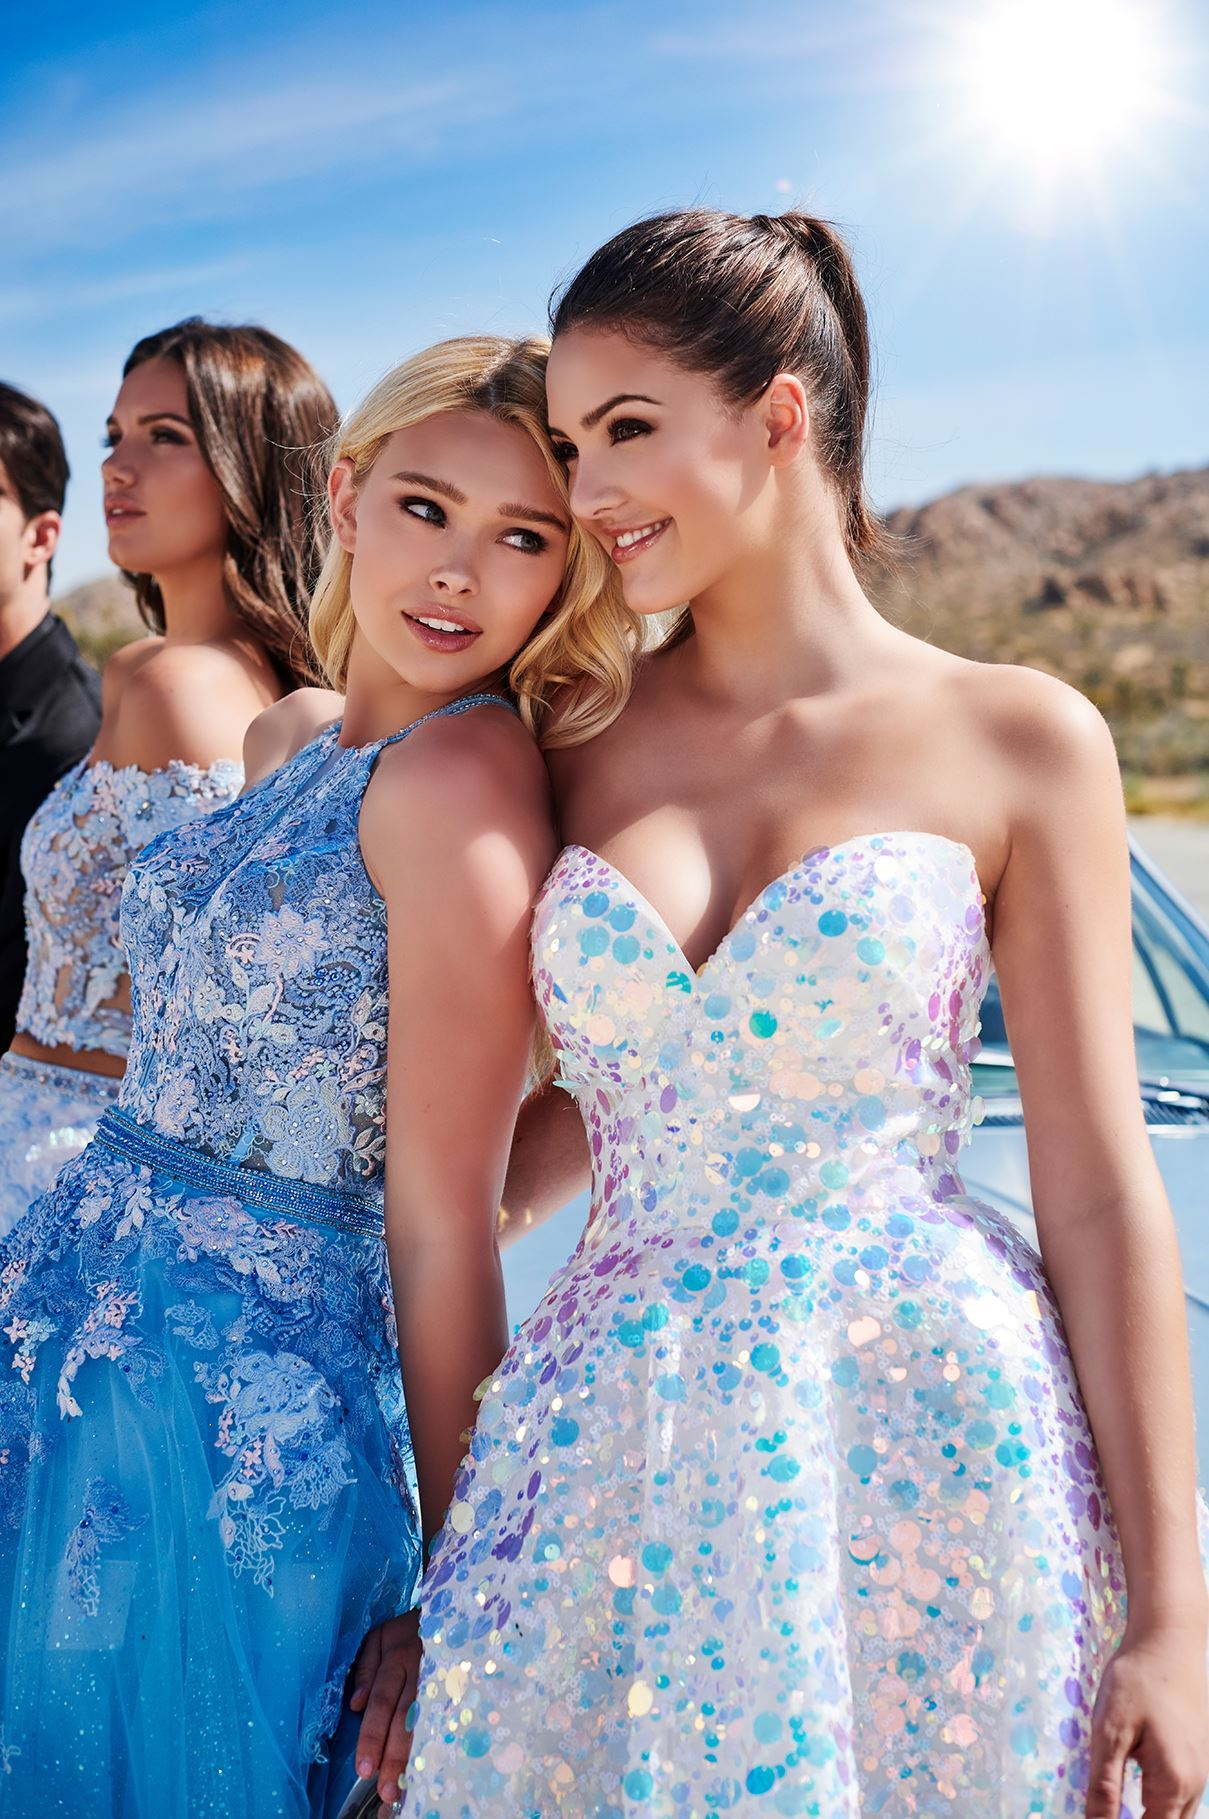 Three models in prom dresses